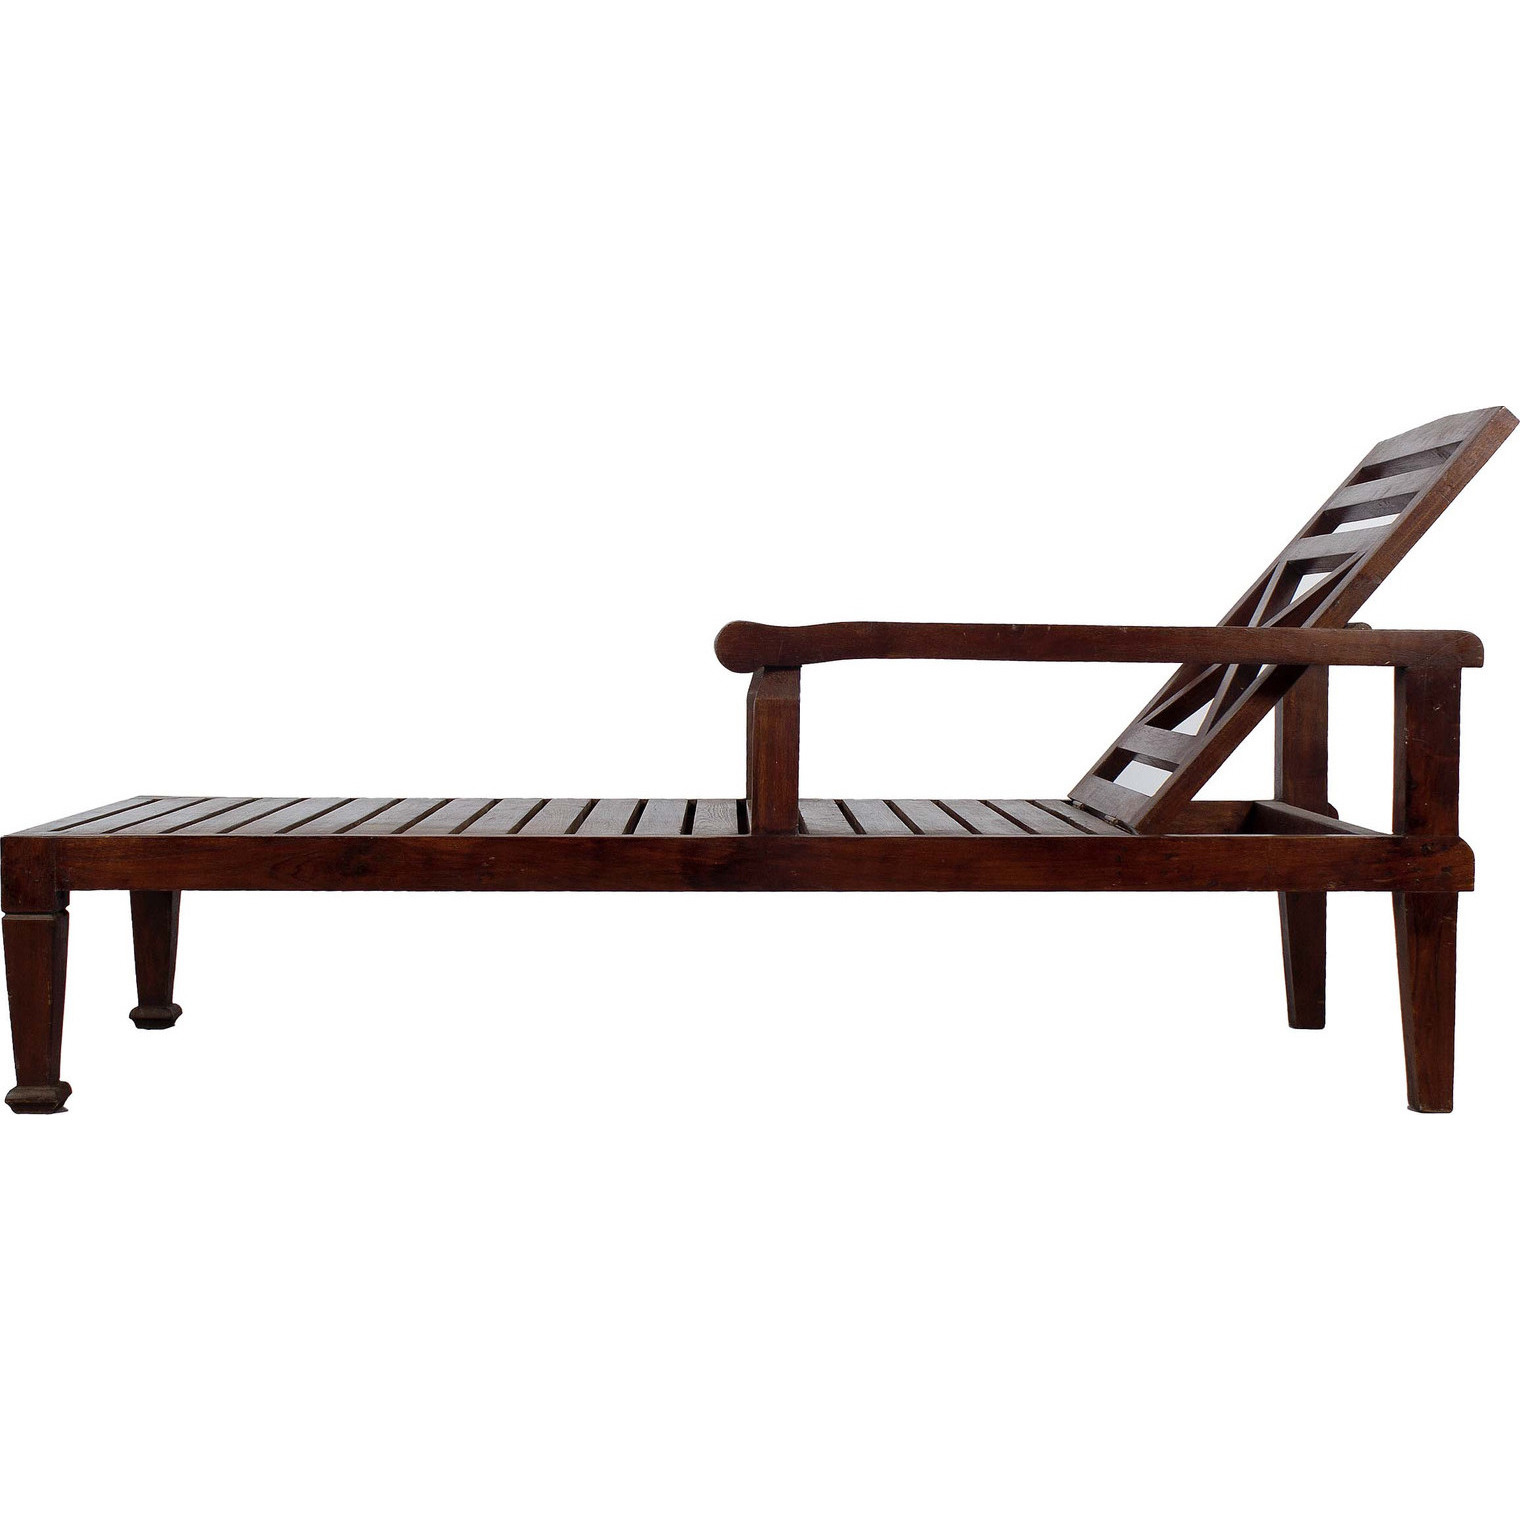 buy online solid teak wood beach chaise lounge chairb dark wood finish from usa. Black Bedroom Furniture Sets. Home Design Ideas